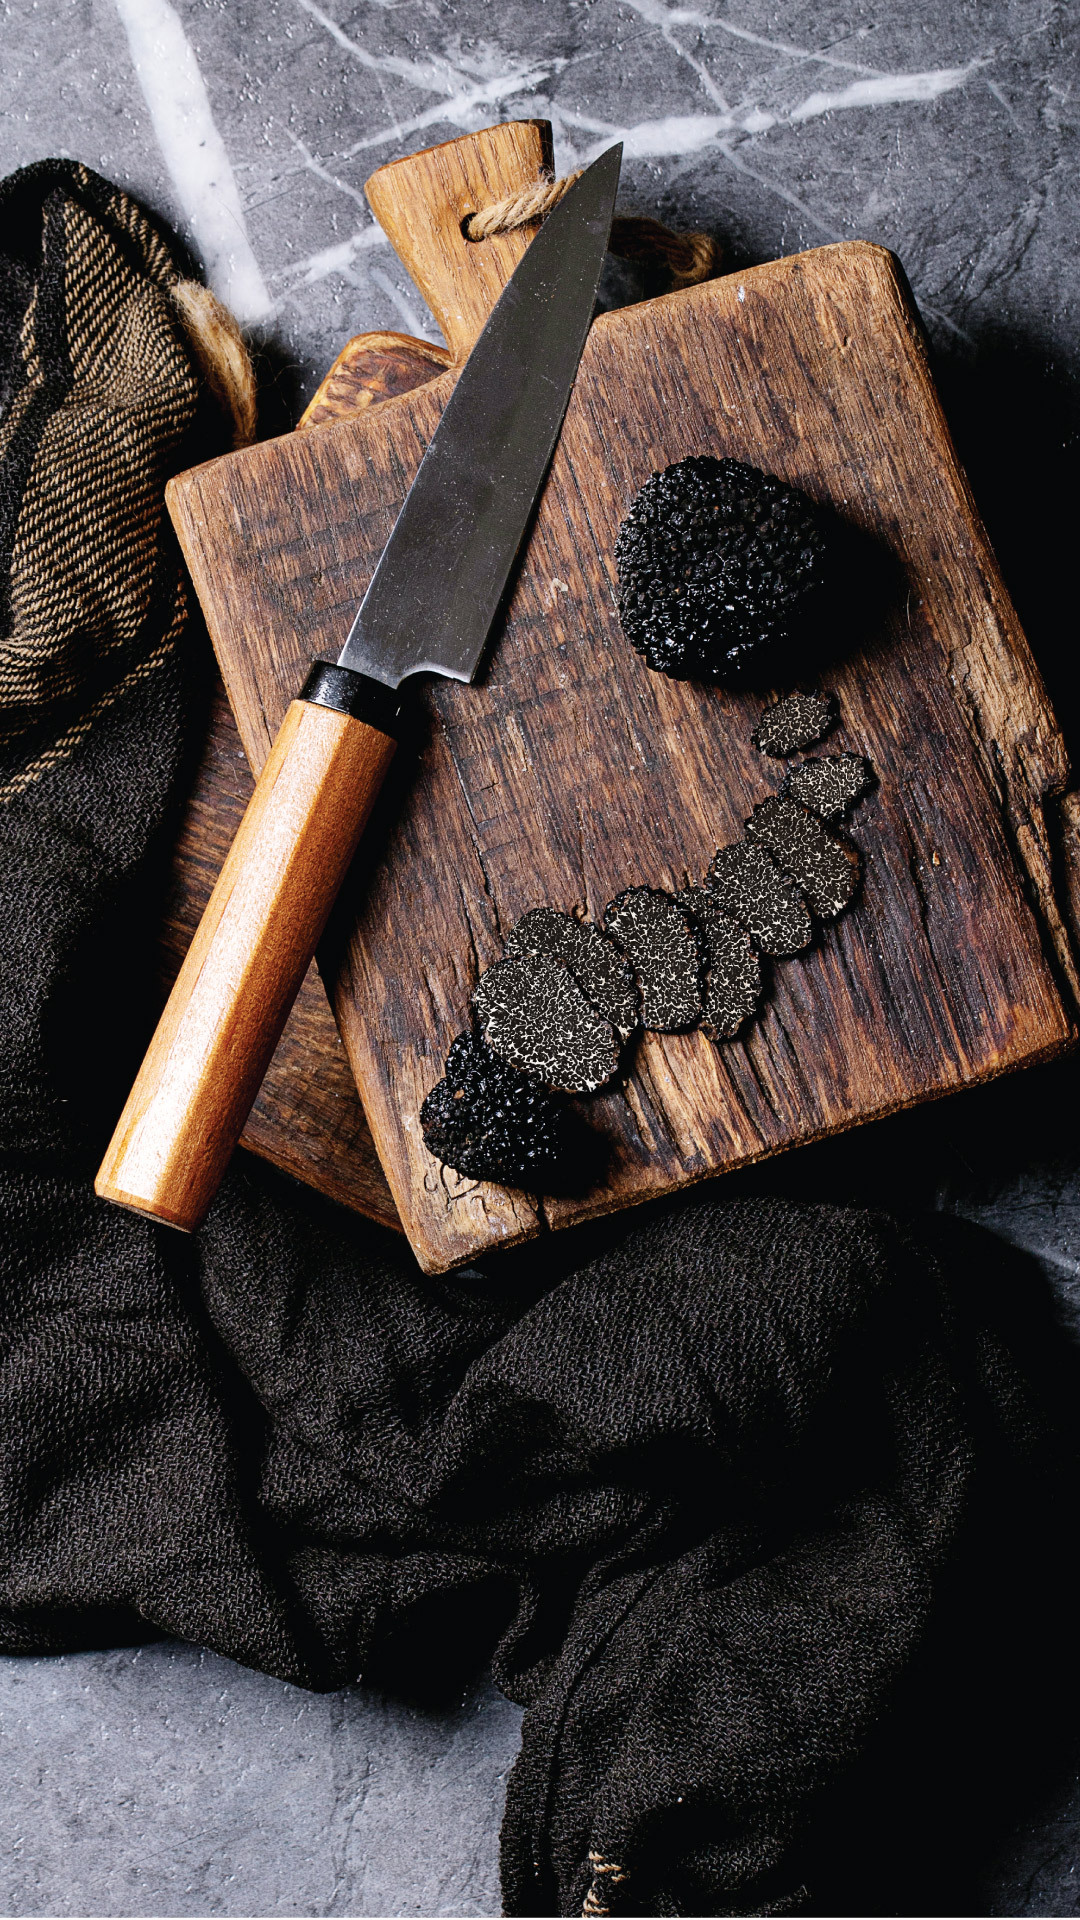 Are You Ready for Some Truffle-icious Fun at Home? Order Your Truffle Box Now!